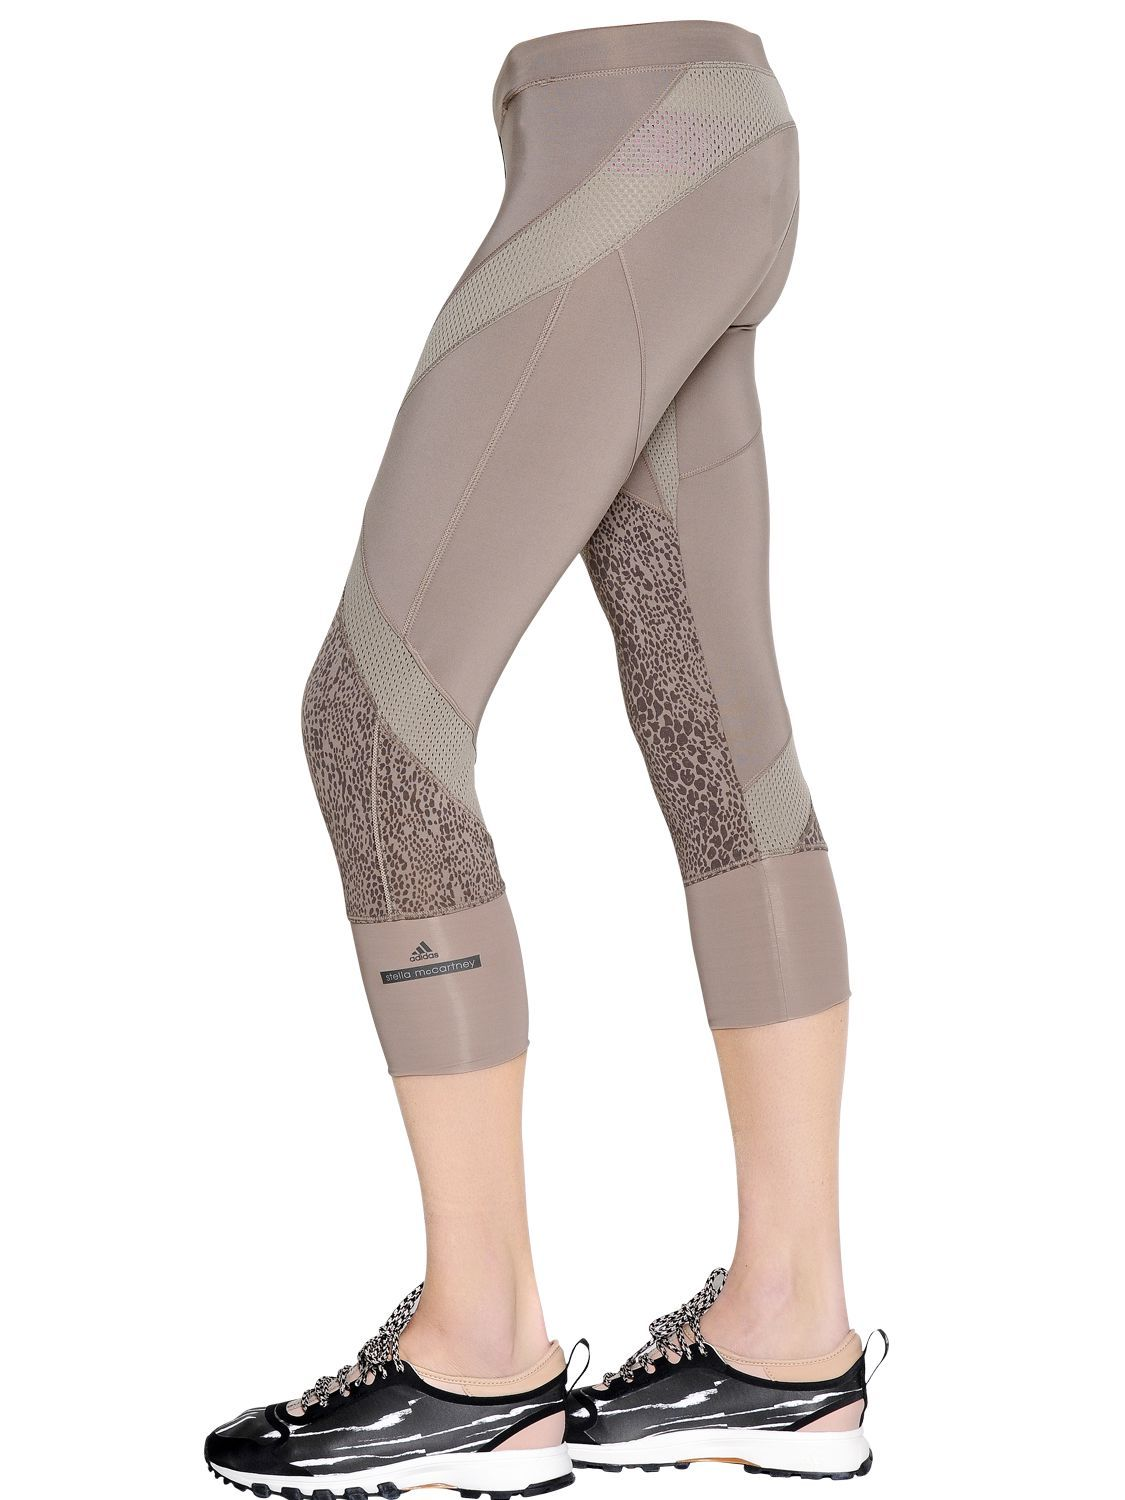 CAPRI MICROFIBER LEGGINGS - adidas by stella mccartney